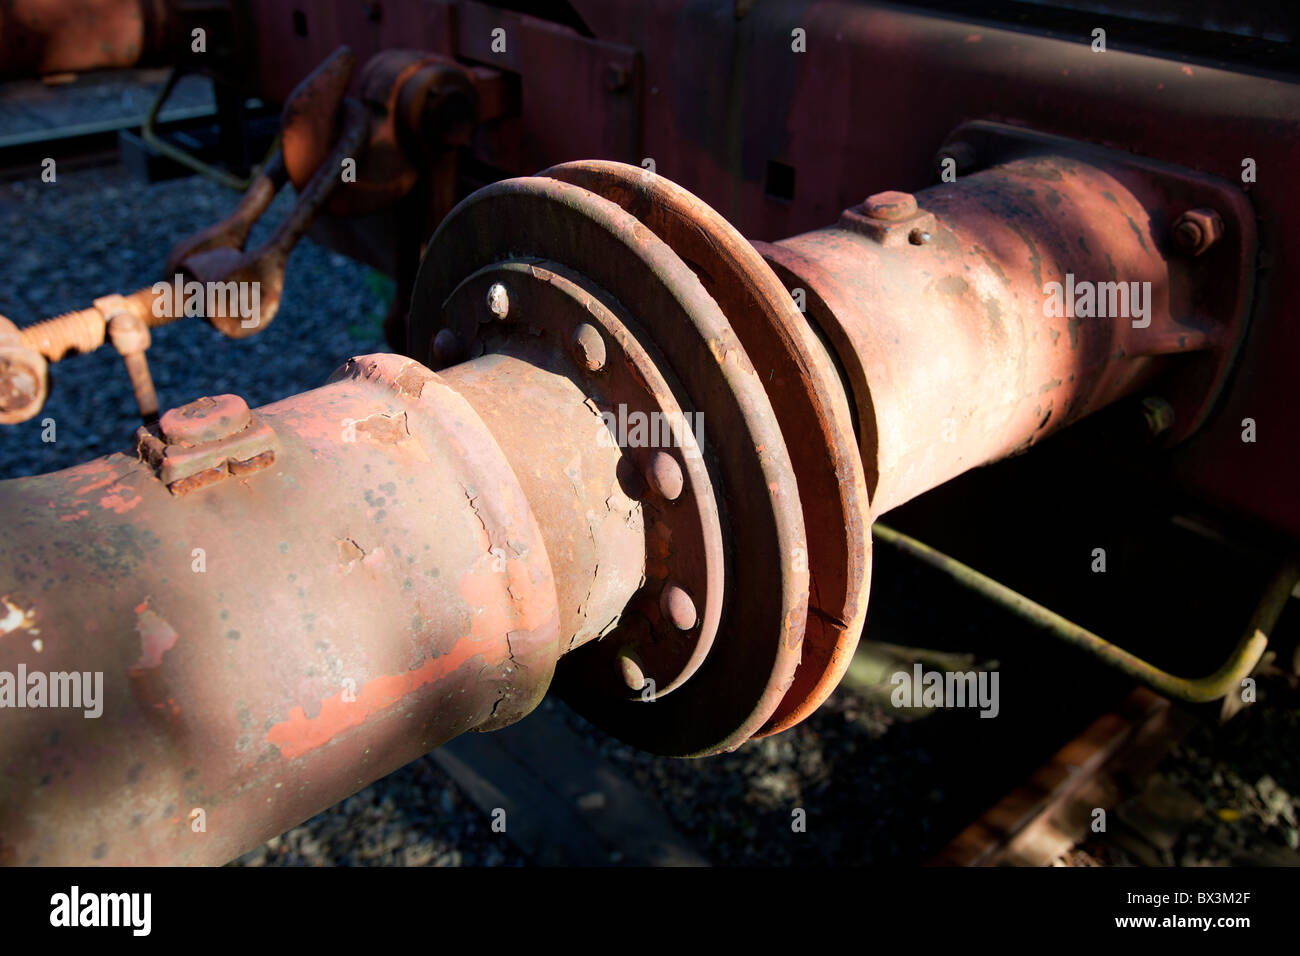 Railroad box-car shock absorber - Stock Image